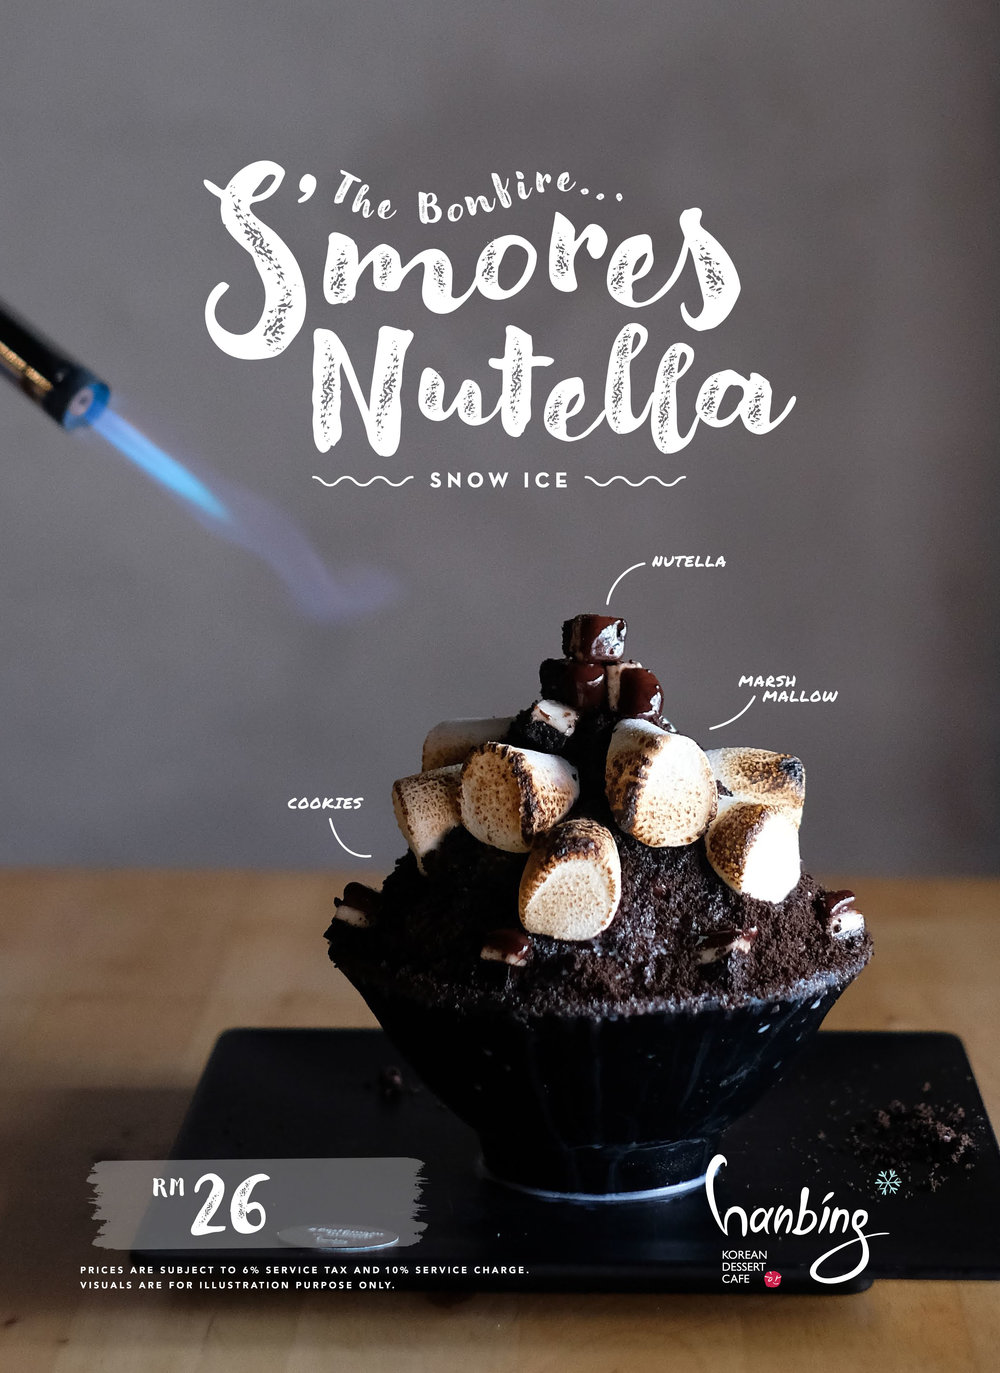 The Bonfire… S'mores Nutella! - Camp out for The Bonfire, our version of S'mores Nutella Bingsu.